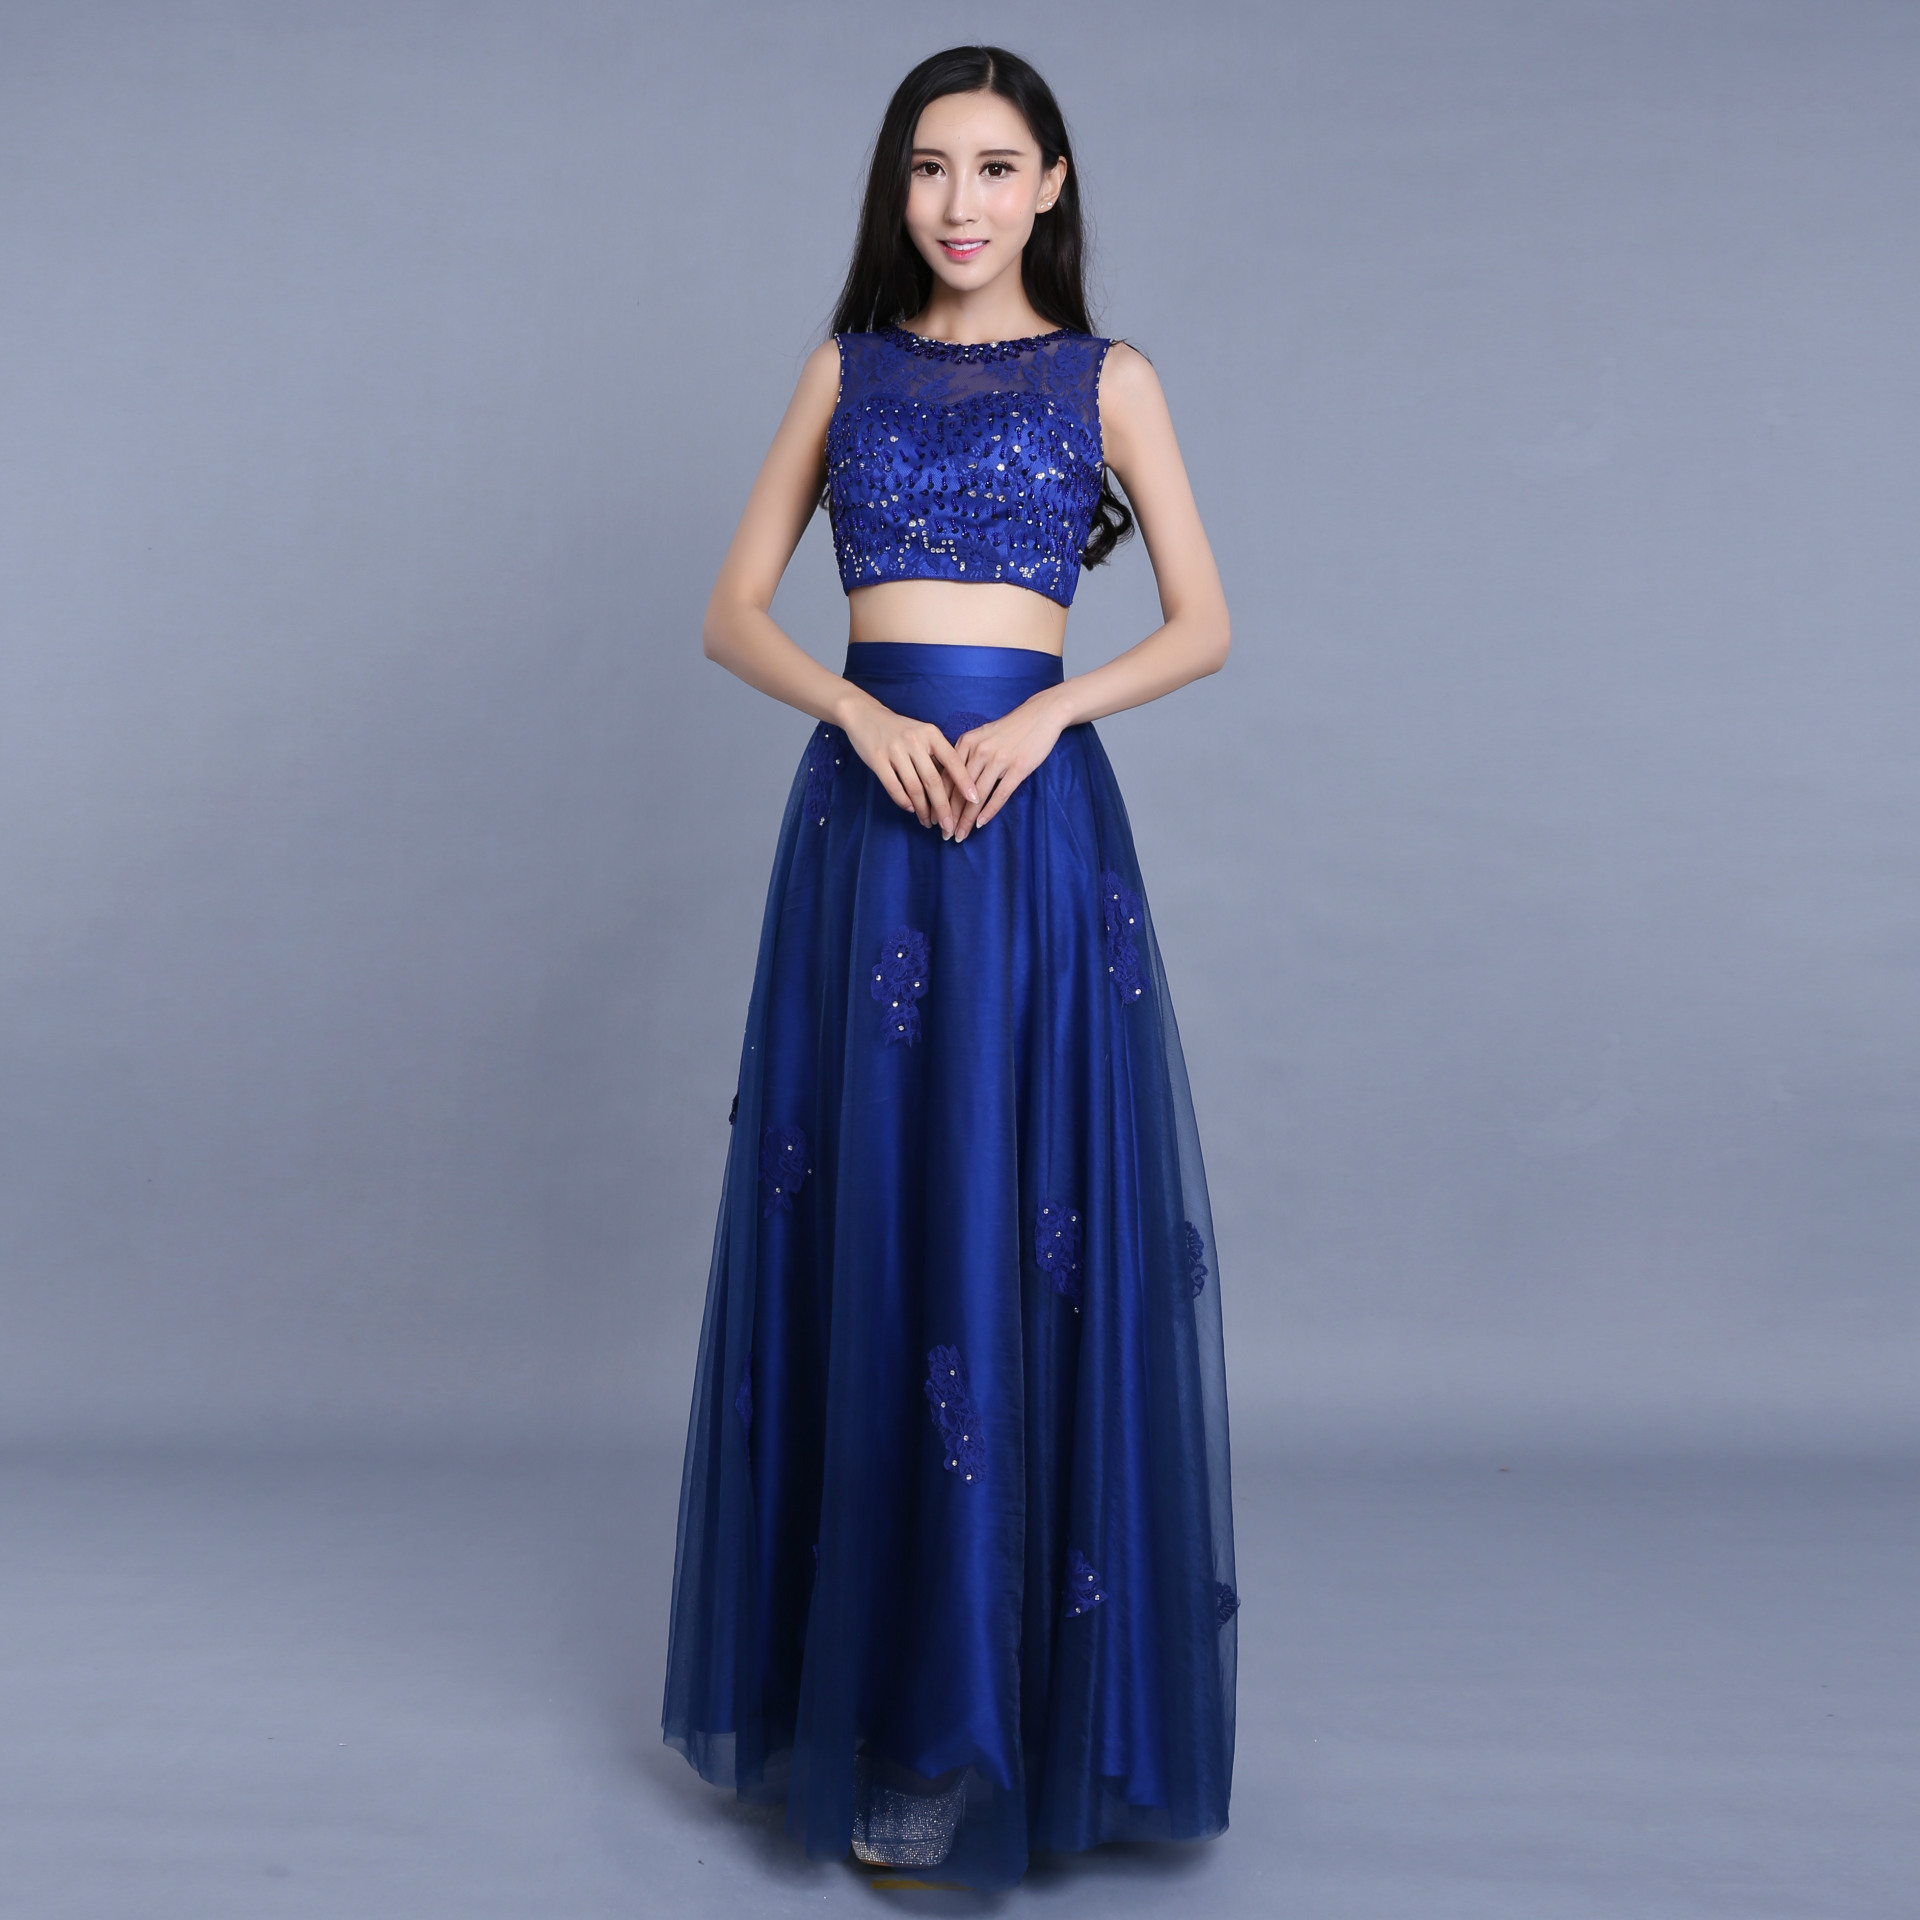 Scoop Two-piece Royal Blue   Prom     Dresses   2019 Elegant Chiffon Beaded Long Evening   Dresses   Party Gowns Ilbies promettenti